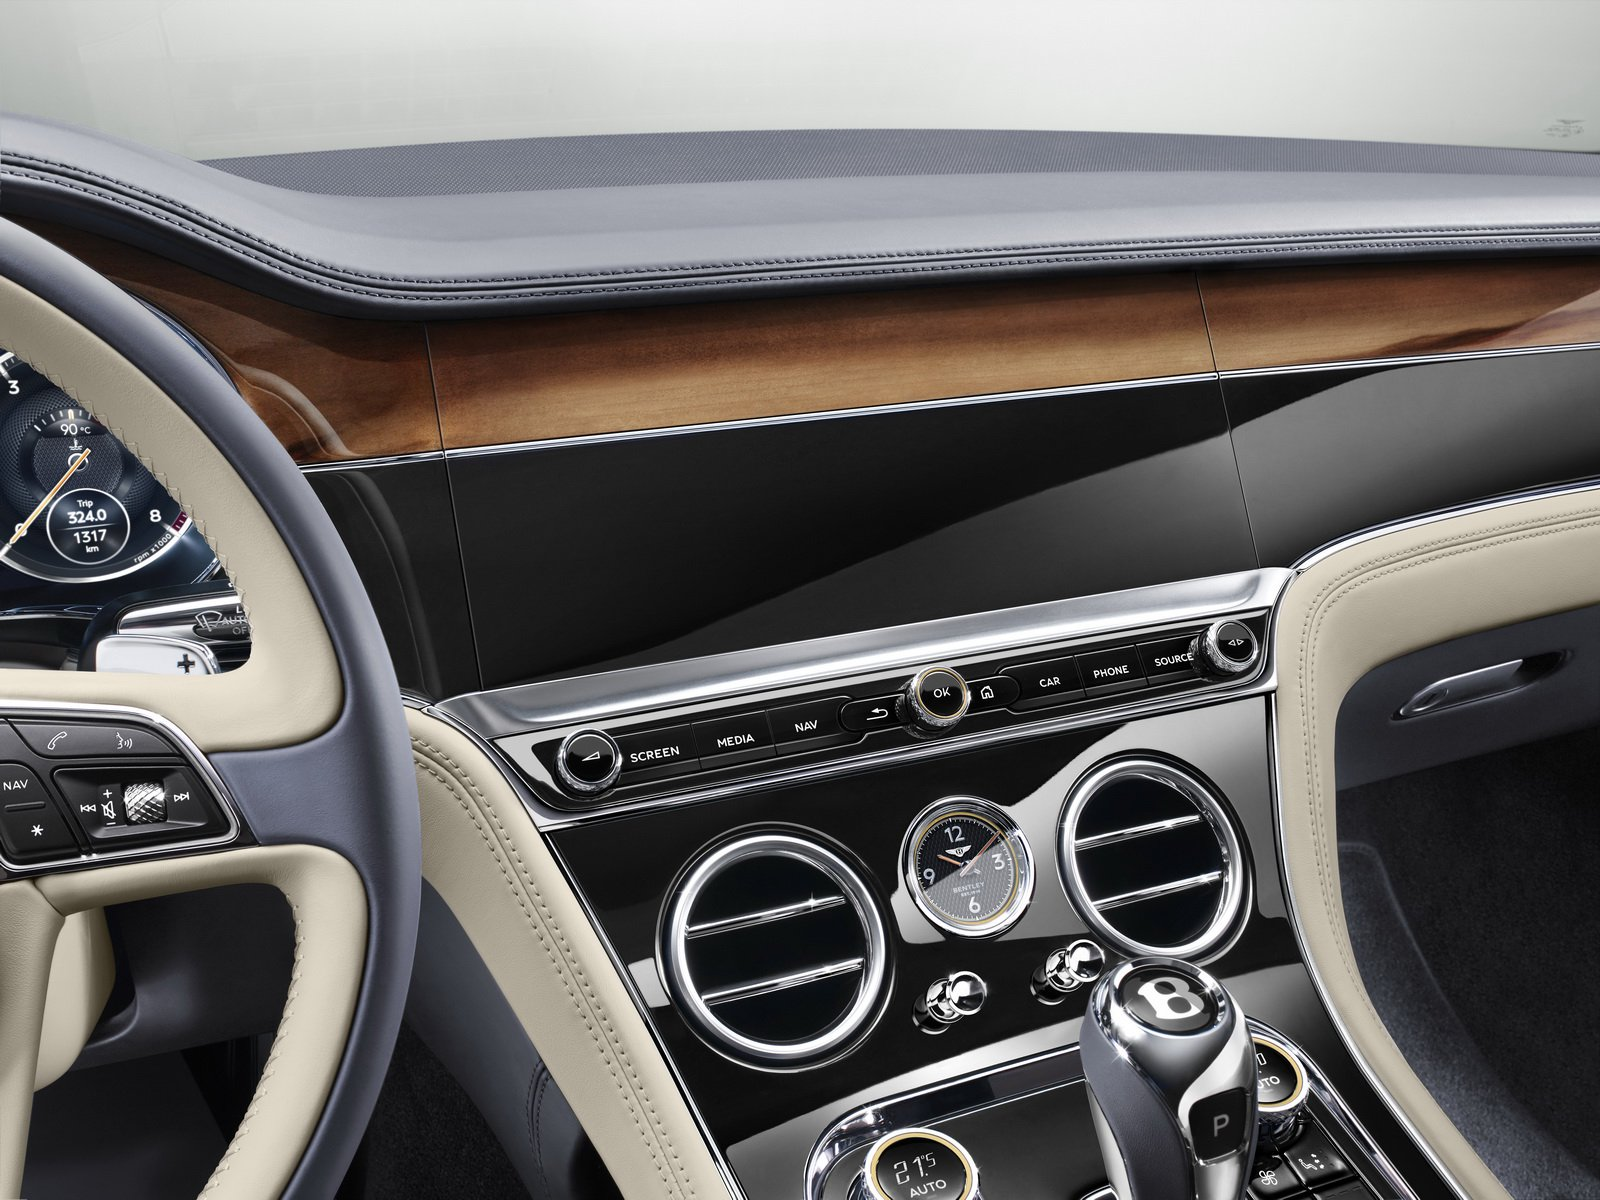 Bentley_Continental_GT_Bang_&_Olufsen_14